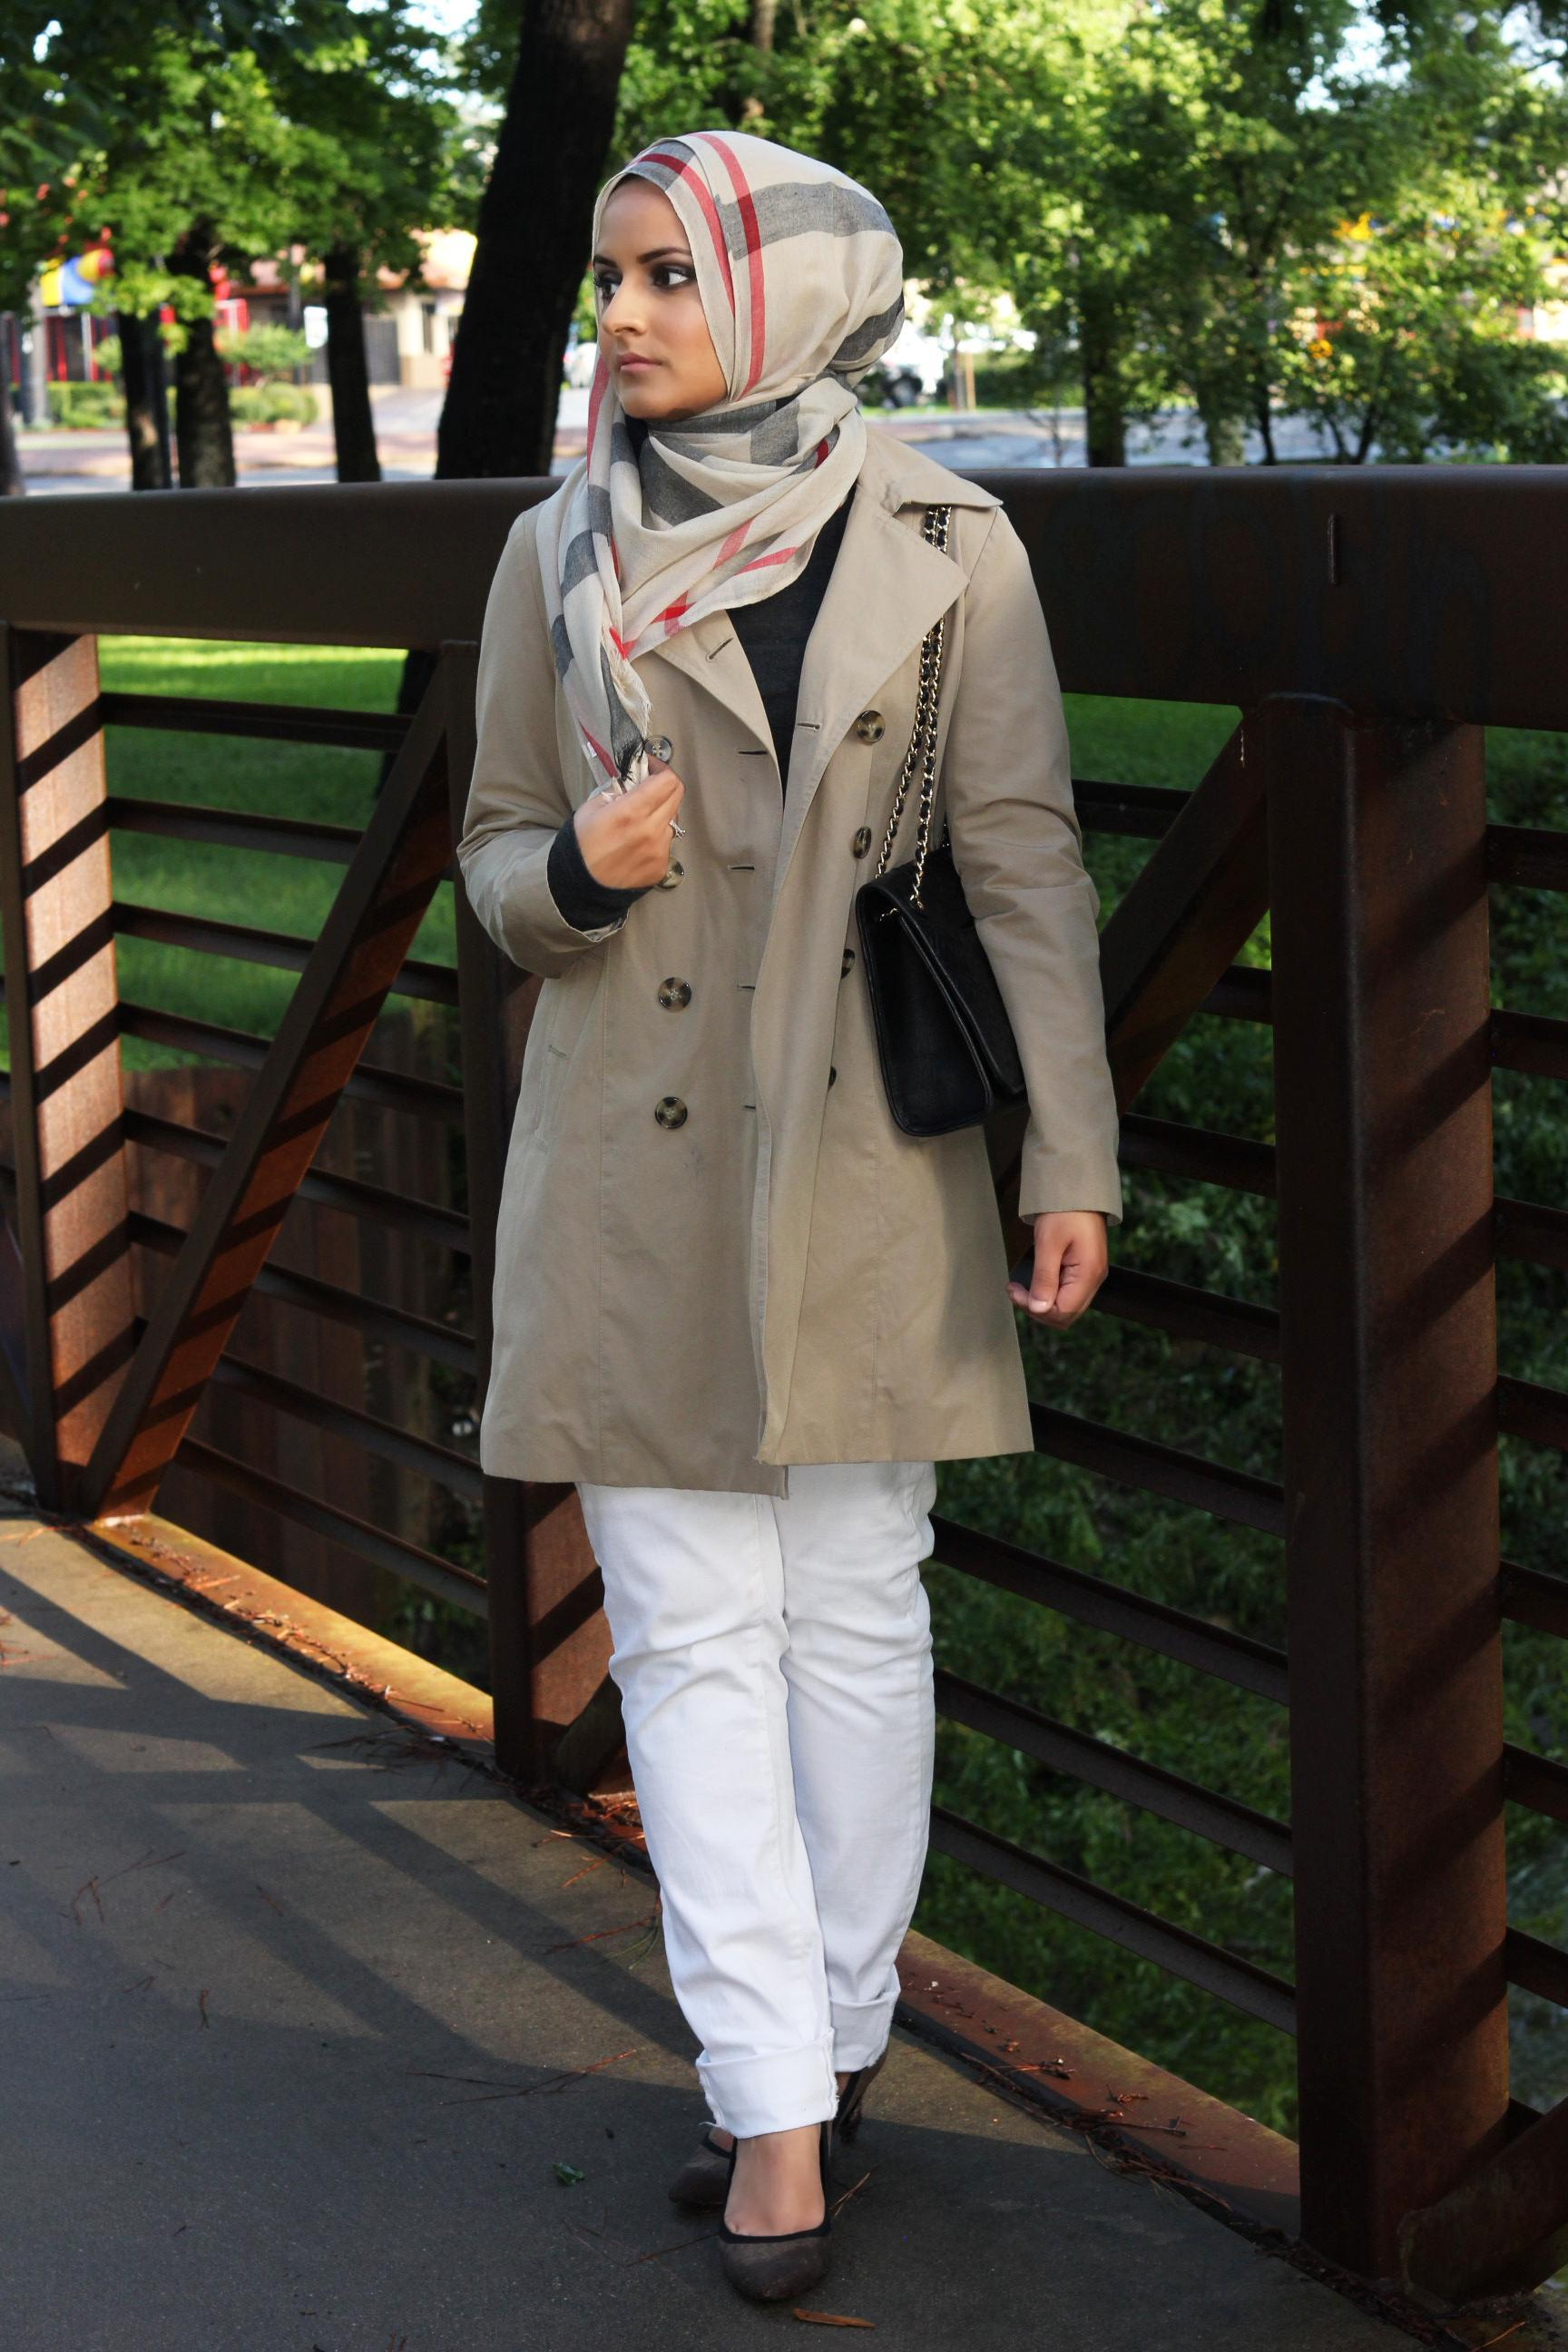 25 Best Hijab Styles For Short Height Girls To Look Tall